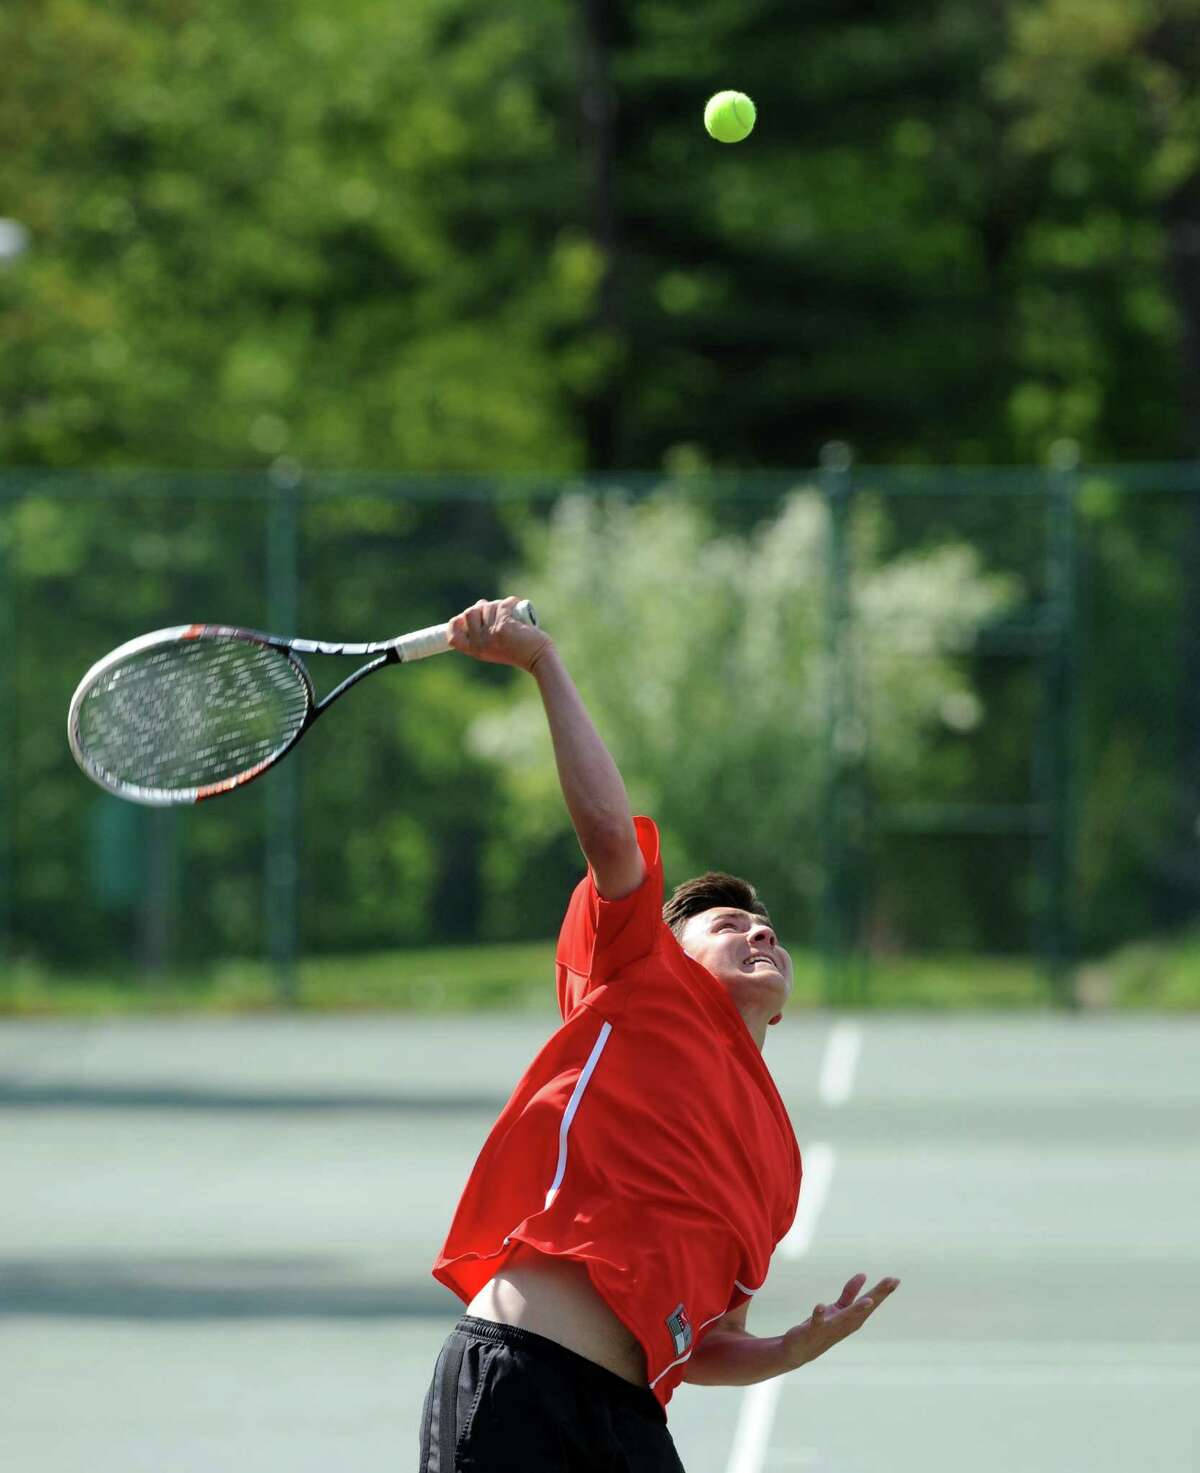 Albany Academy's Michael Haelen serves to Doane Stuart's Lars Olson during their Section II boys' tennis championship match at Central Park on Wednesday May 21, 2014 in Schenectady, N.Y. (Michael P. Farrell/Times Union)